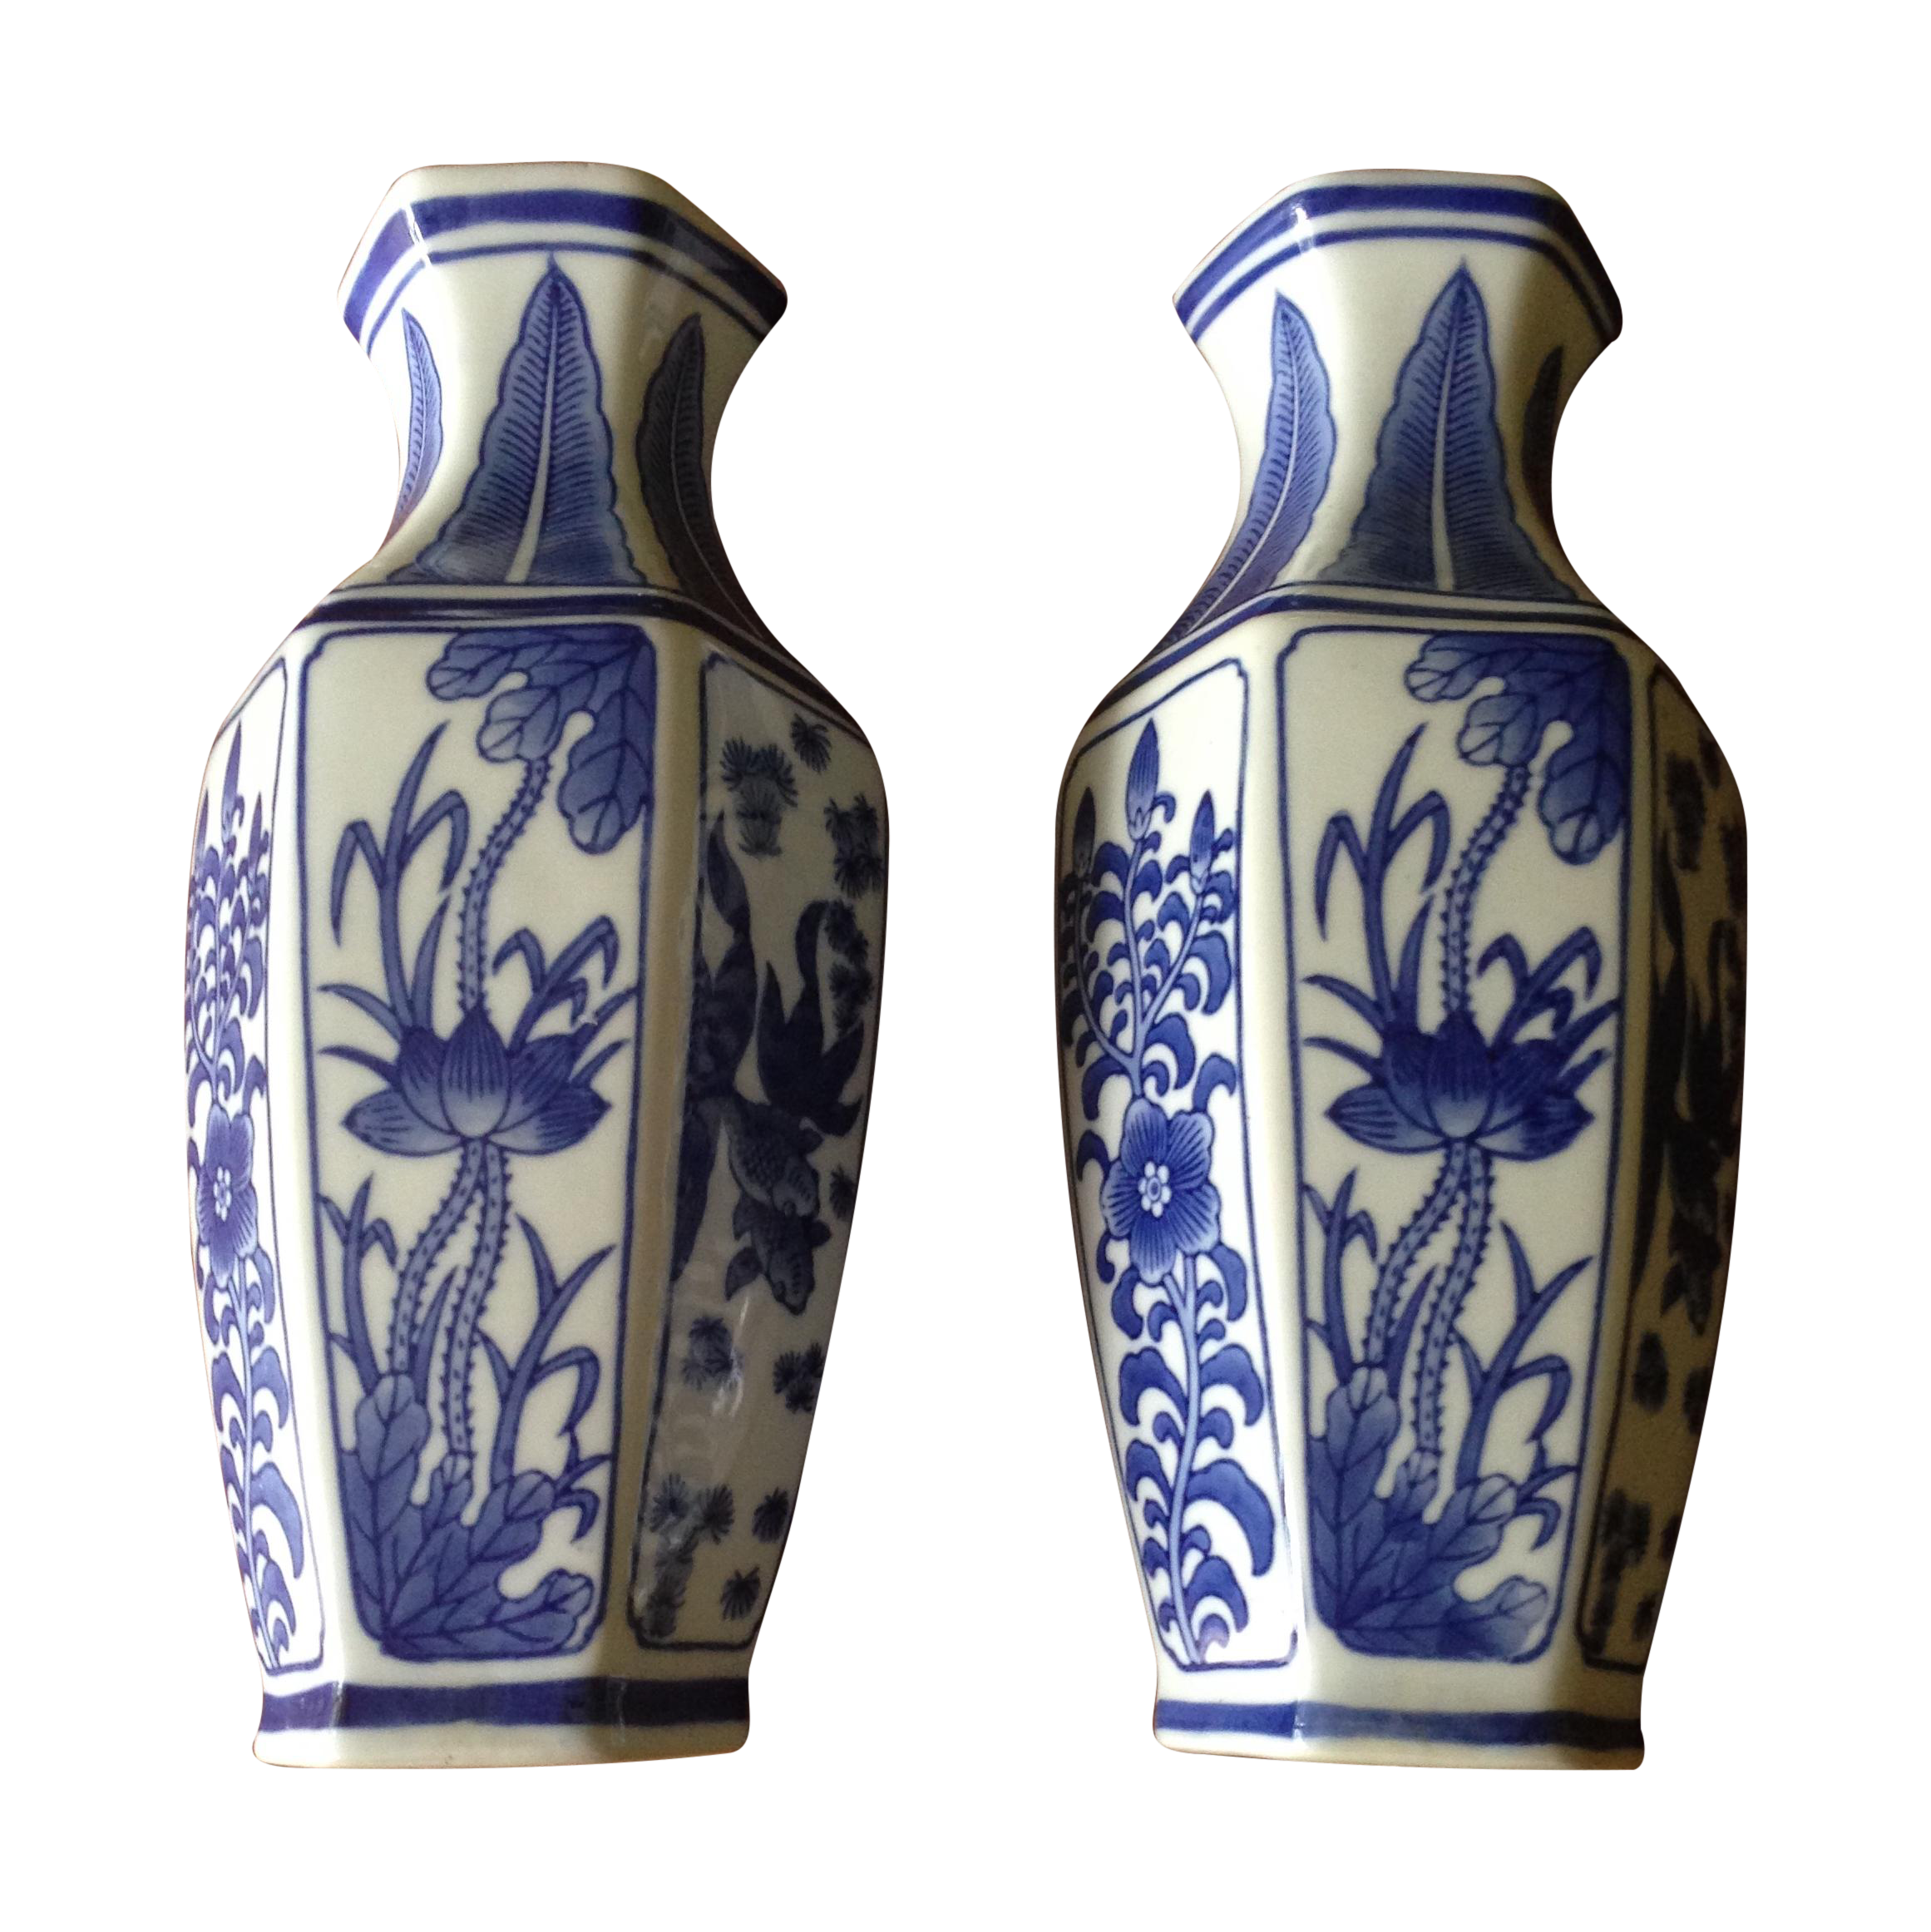 Chinoiserie vintage blue white wall vases pair chairish reviewsmspy